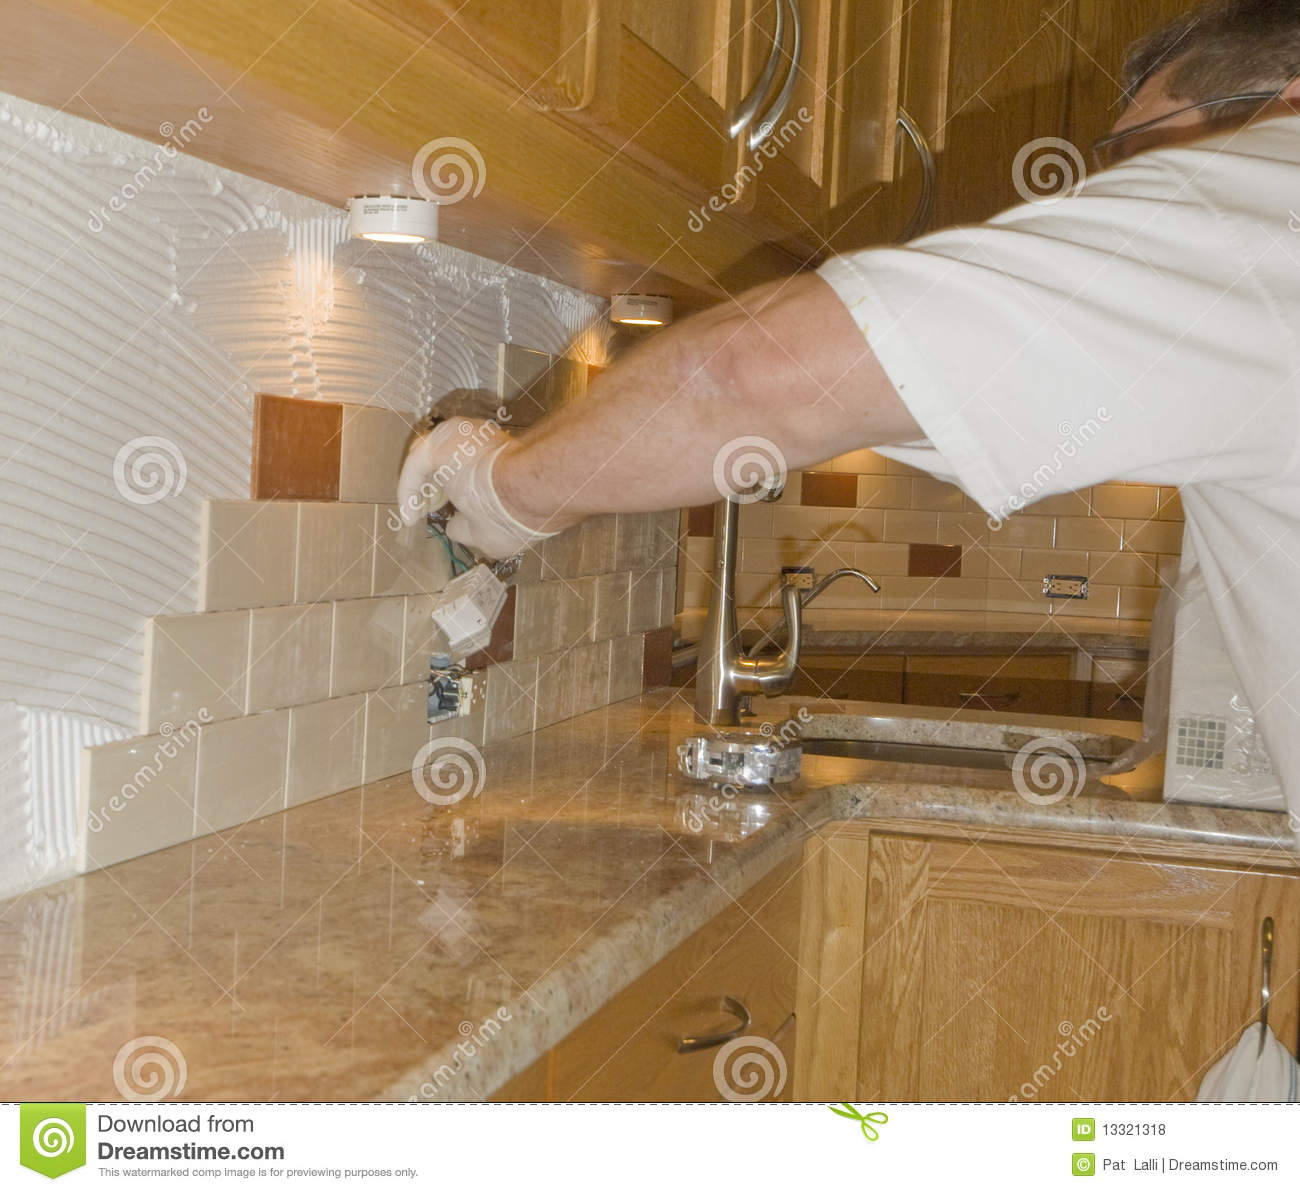 Ceramic Tile For Kitchens Ceramic Tile Installation On Kitchen Backsplash 12 Royalty Free